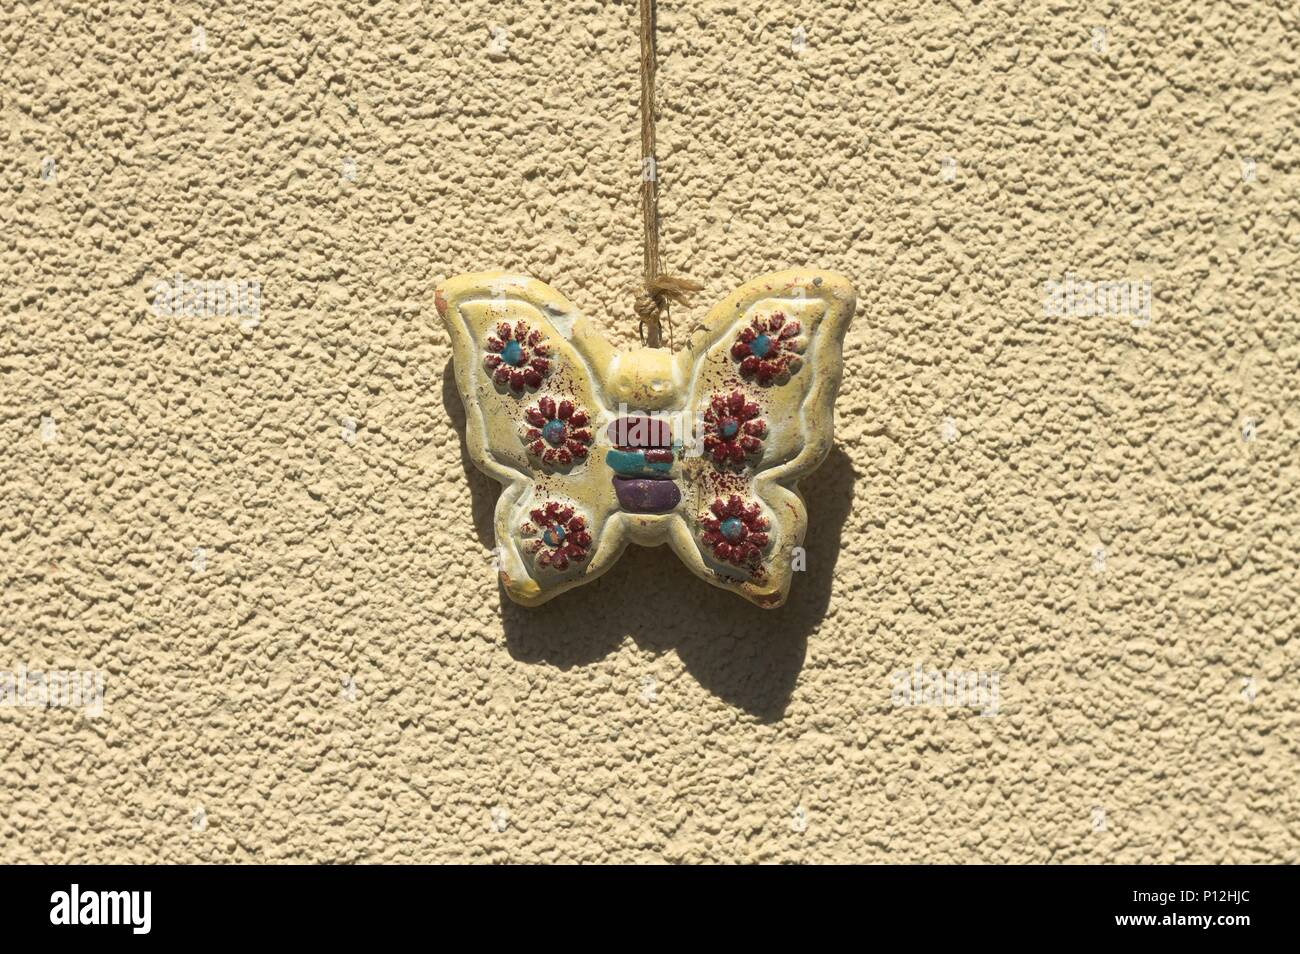 Butterfly Ceramic Stock Photos & Butterfly Ceramic Stock Images - Alamy